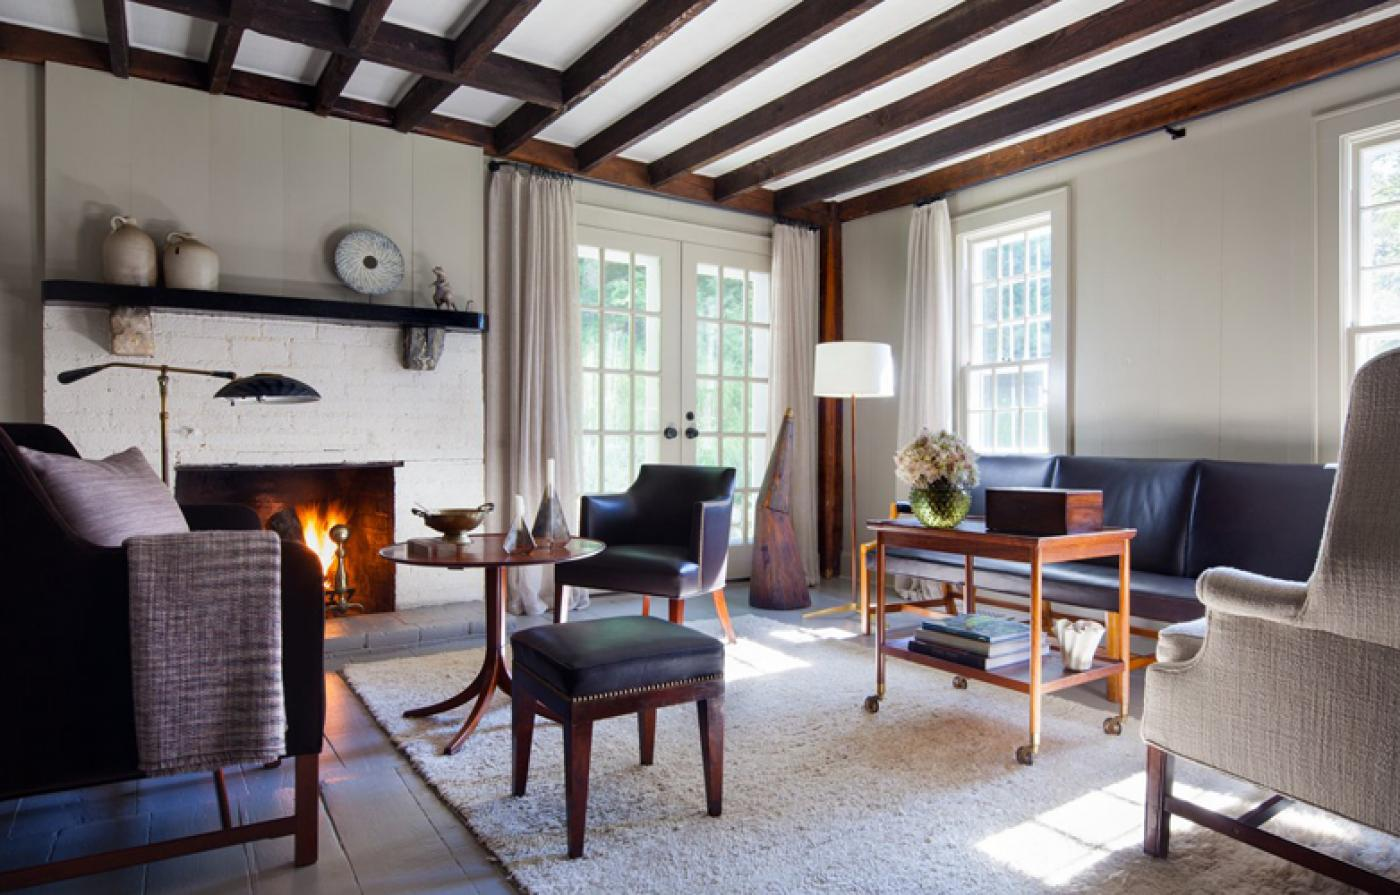 Subdued Elegance Meets Rustic Charm In Shawn Henderson's Upstate New York Retreat